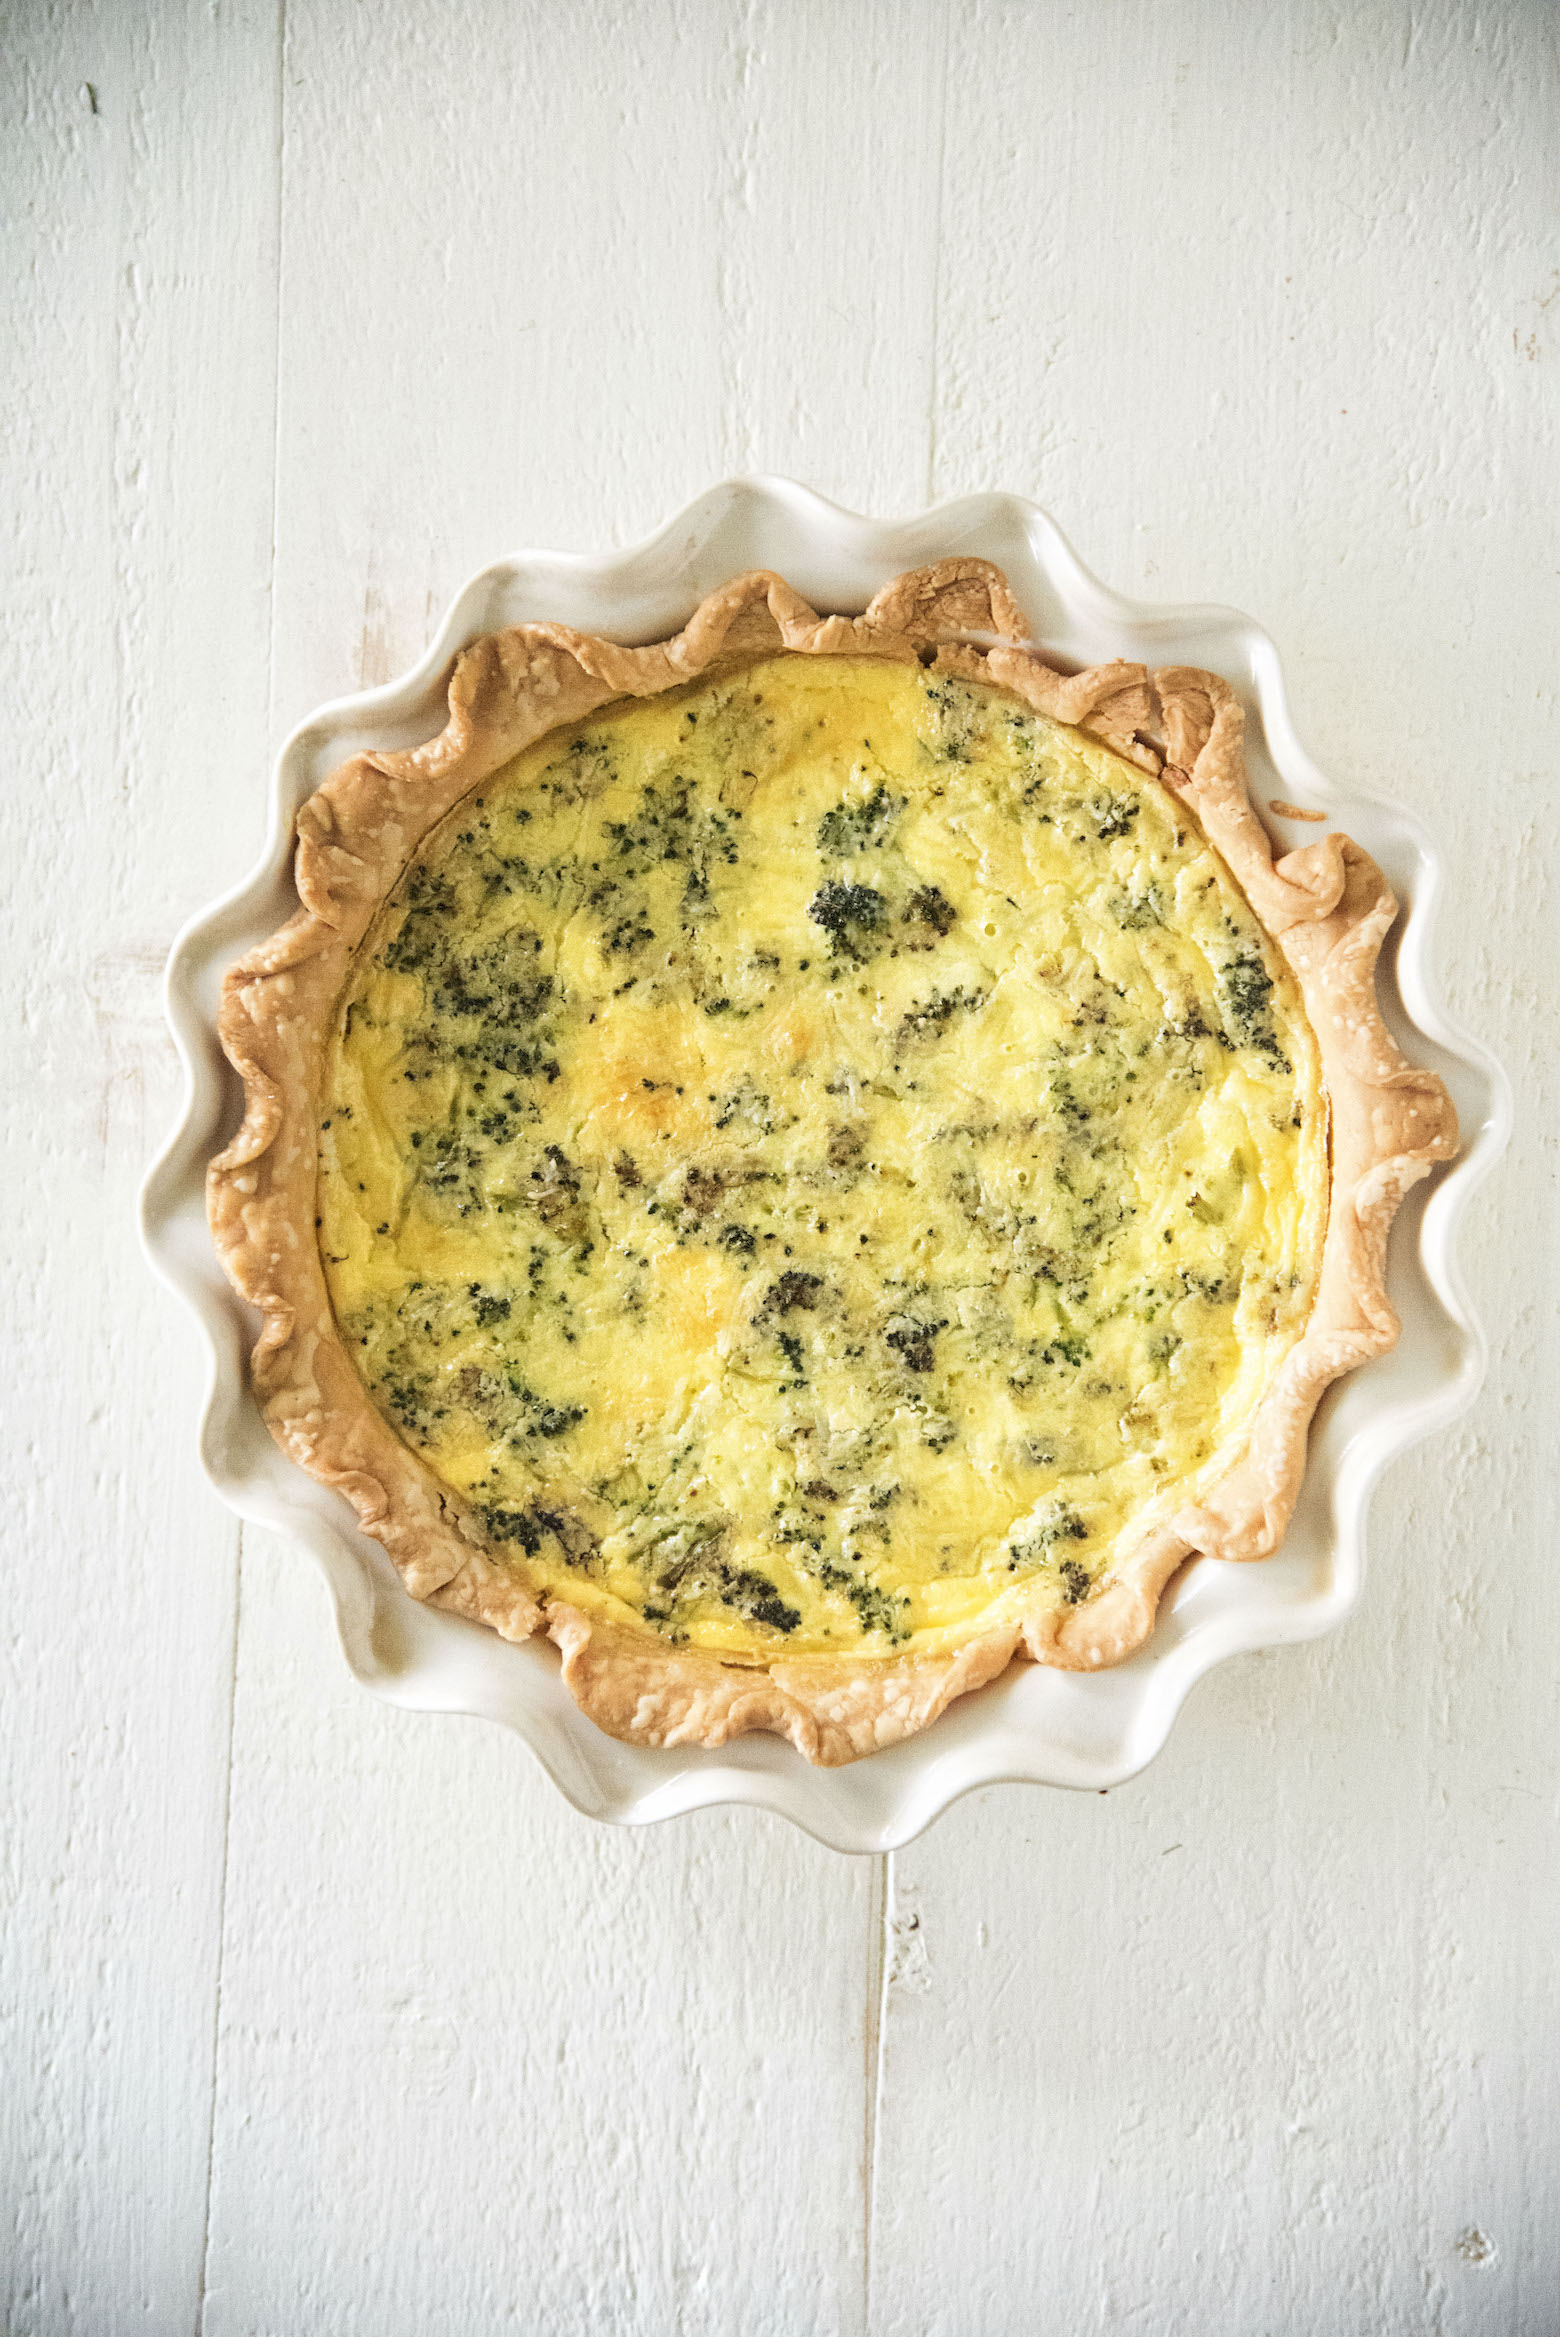 Vegetarian Roasted Broccoli Cheddar Quiche